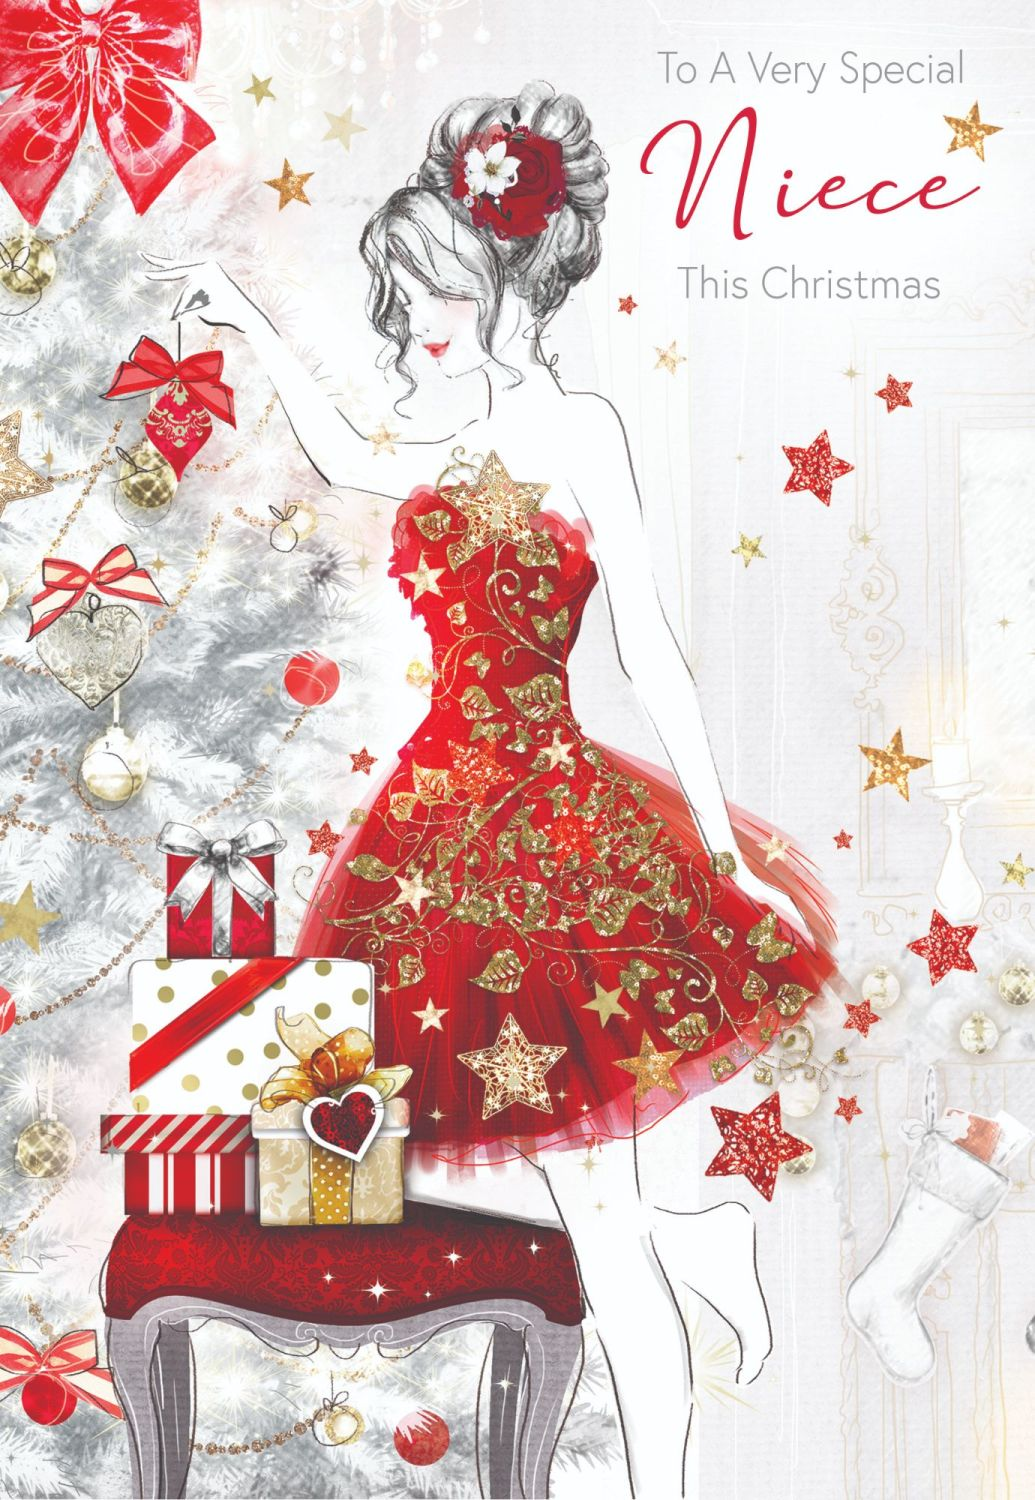 To A Very Special Niece Christmas Card - NIECE Christmas CARDS - Beautiful